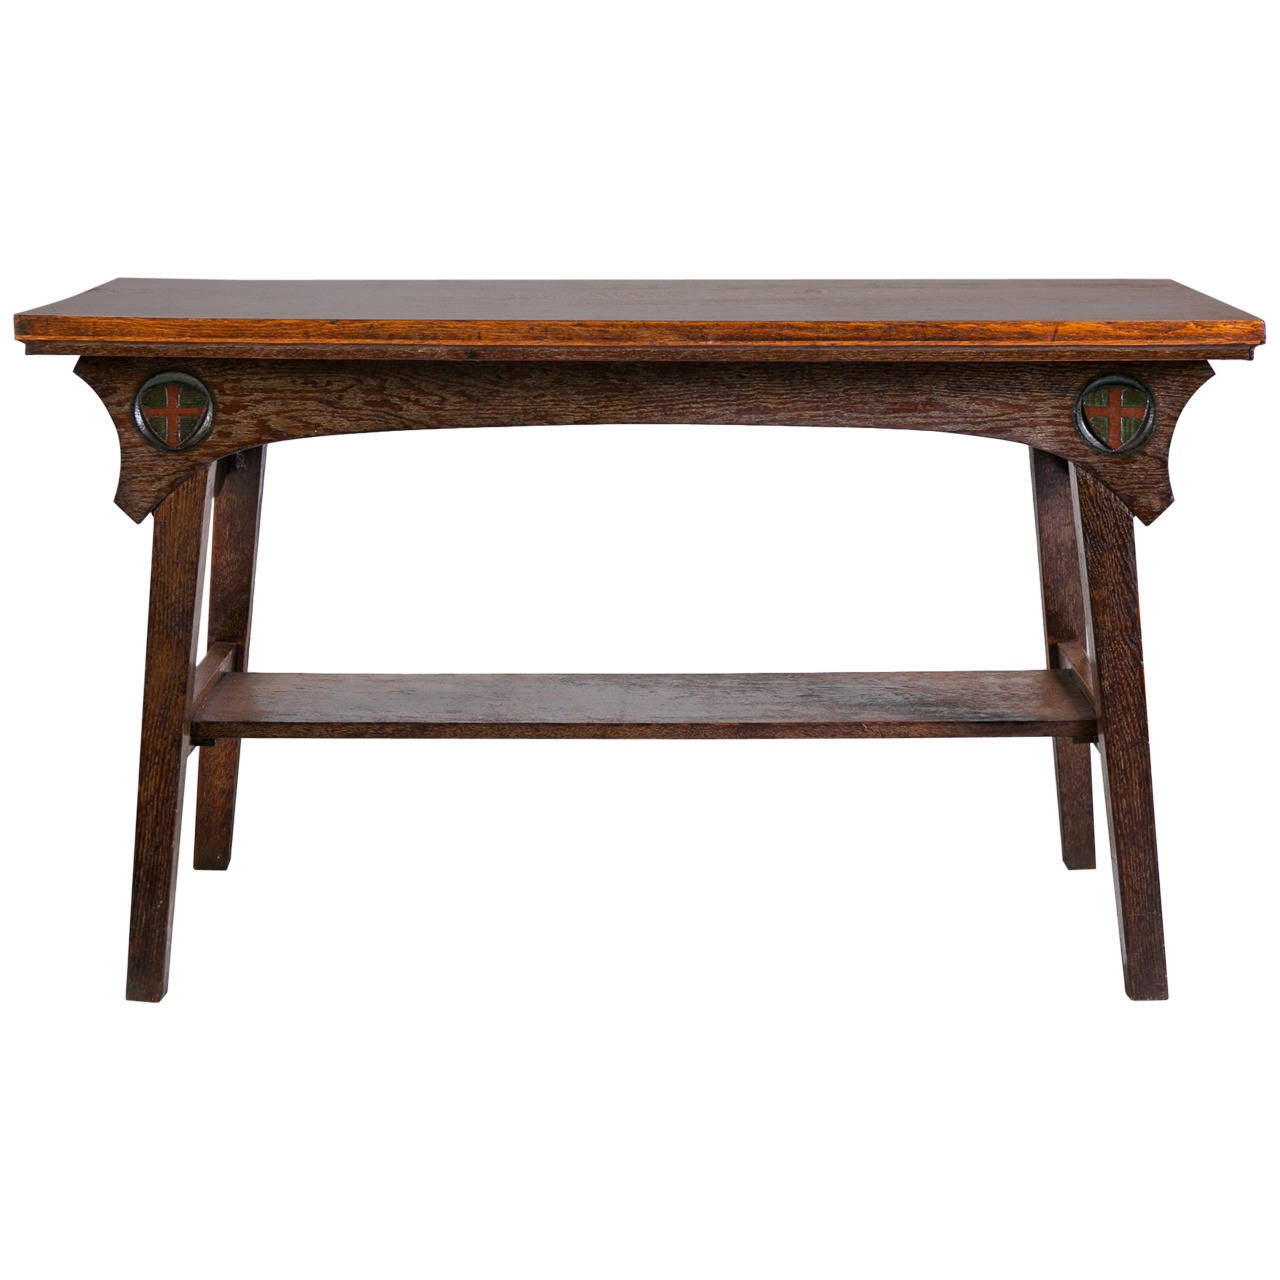 Arts and crafts english oak hand carved console table for for Arts and crafts sofa table